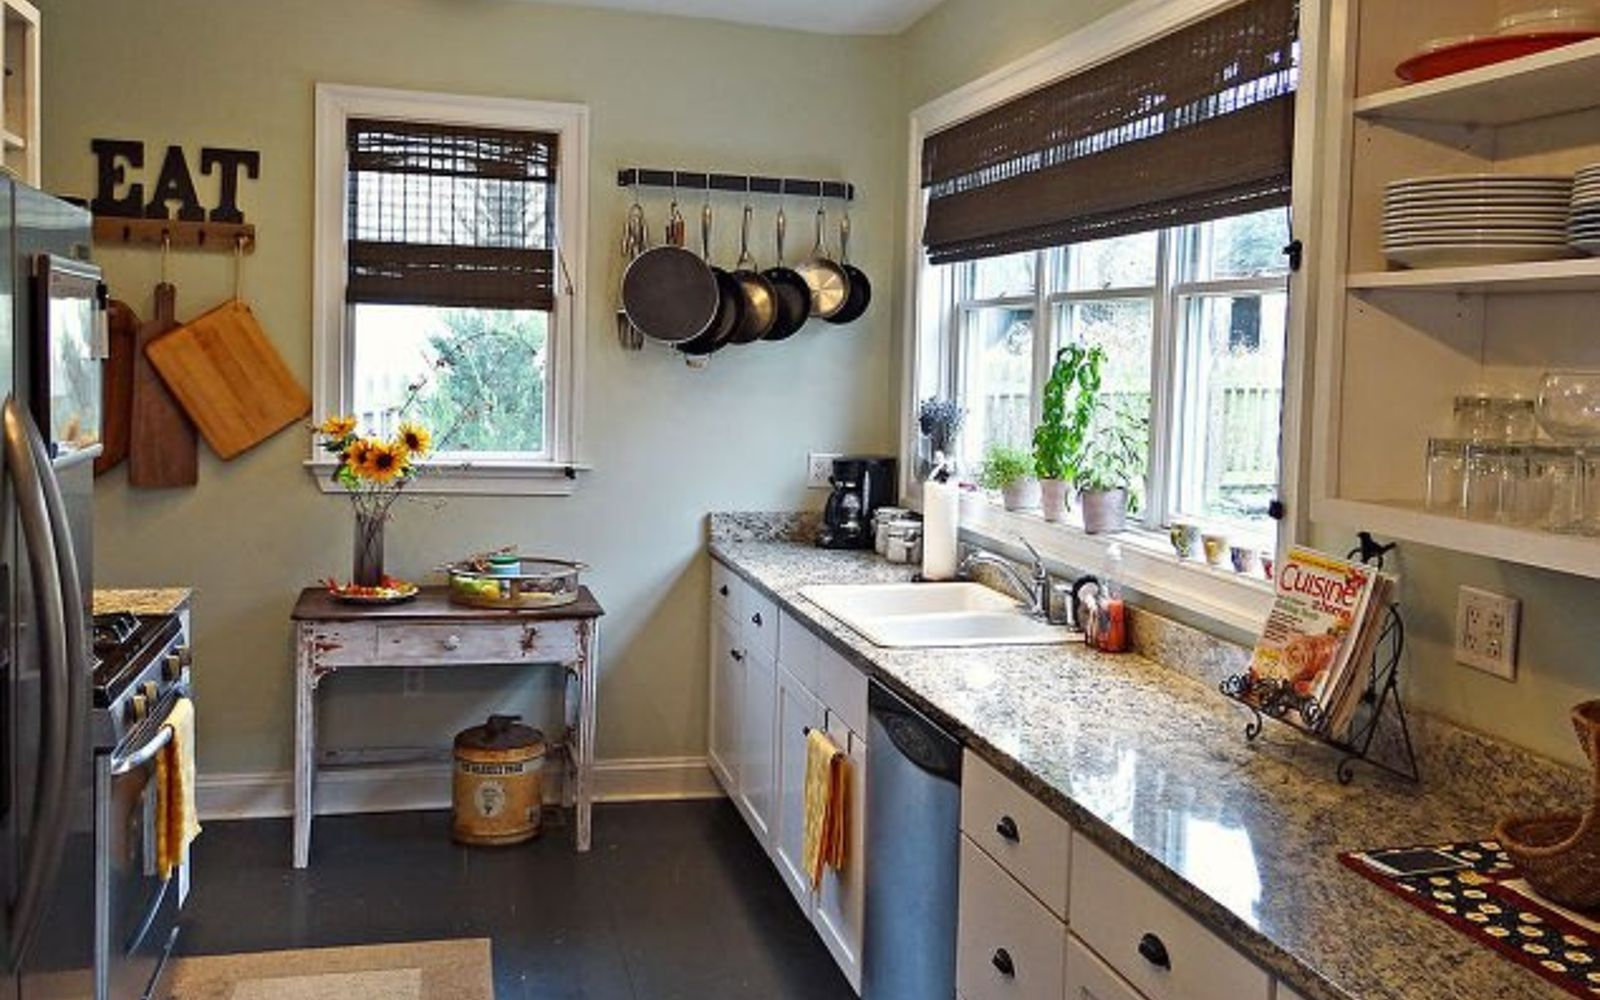 s 13 kitchen paint colors people are pinning like crazy, kitchen design, paint colors, Keep it fresh with a mint green